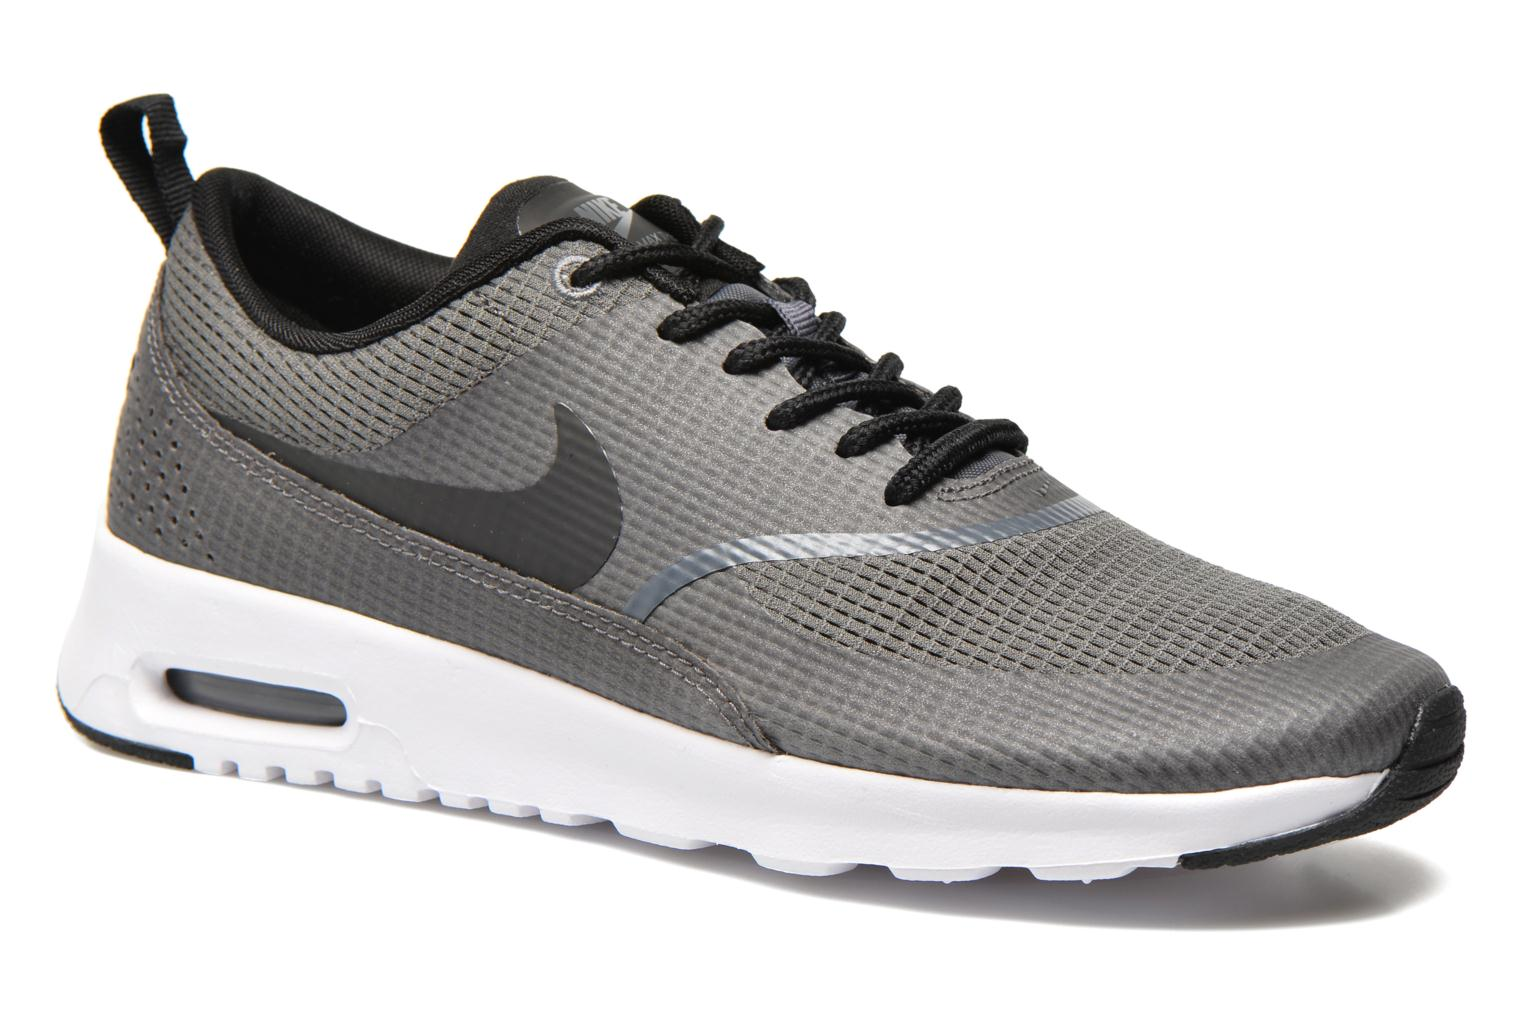 W Nike Air Max Thea Txt Dark Grey/Black-White